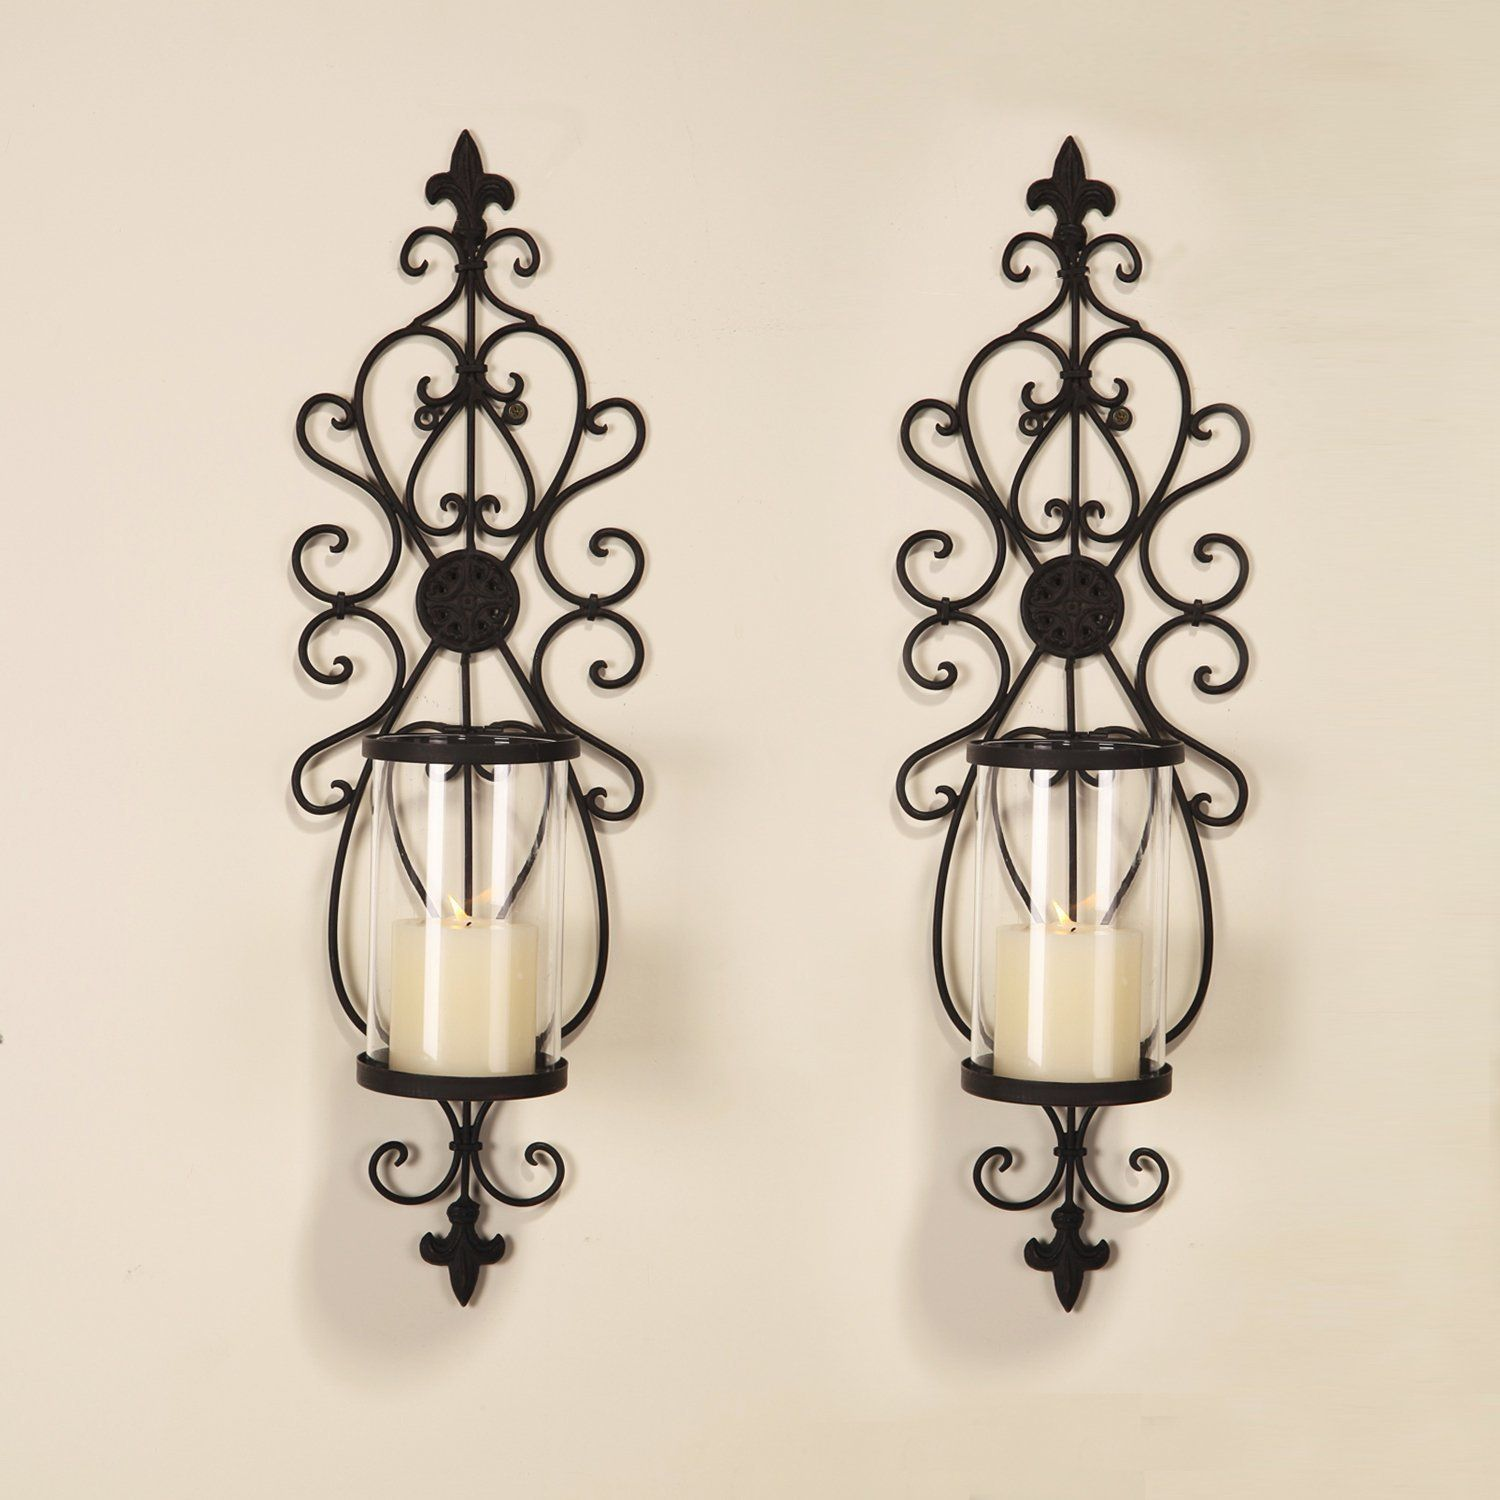 Tall Iron Wall Sconce   Candle wall sconces, Candle holder ... on Black Wrought Iron Wall Candle Holders id=40632